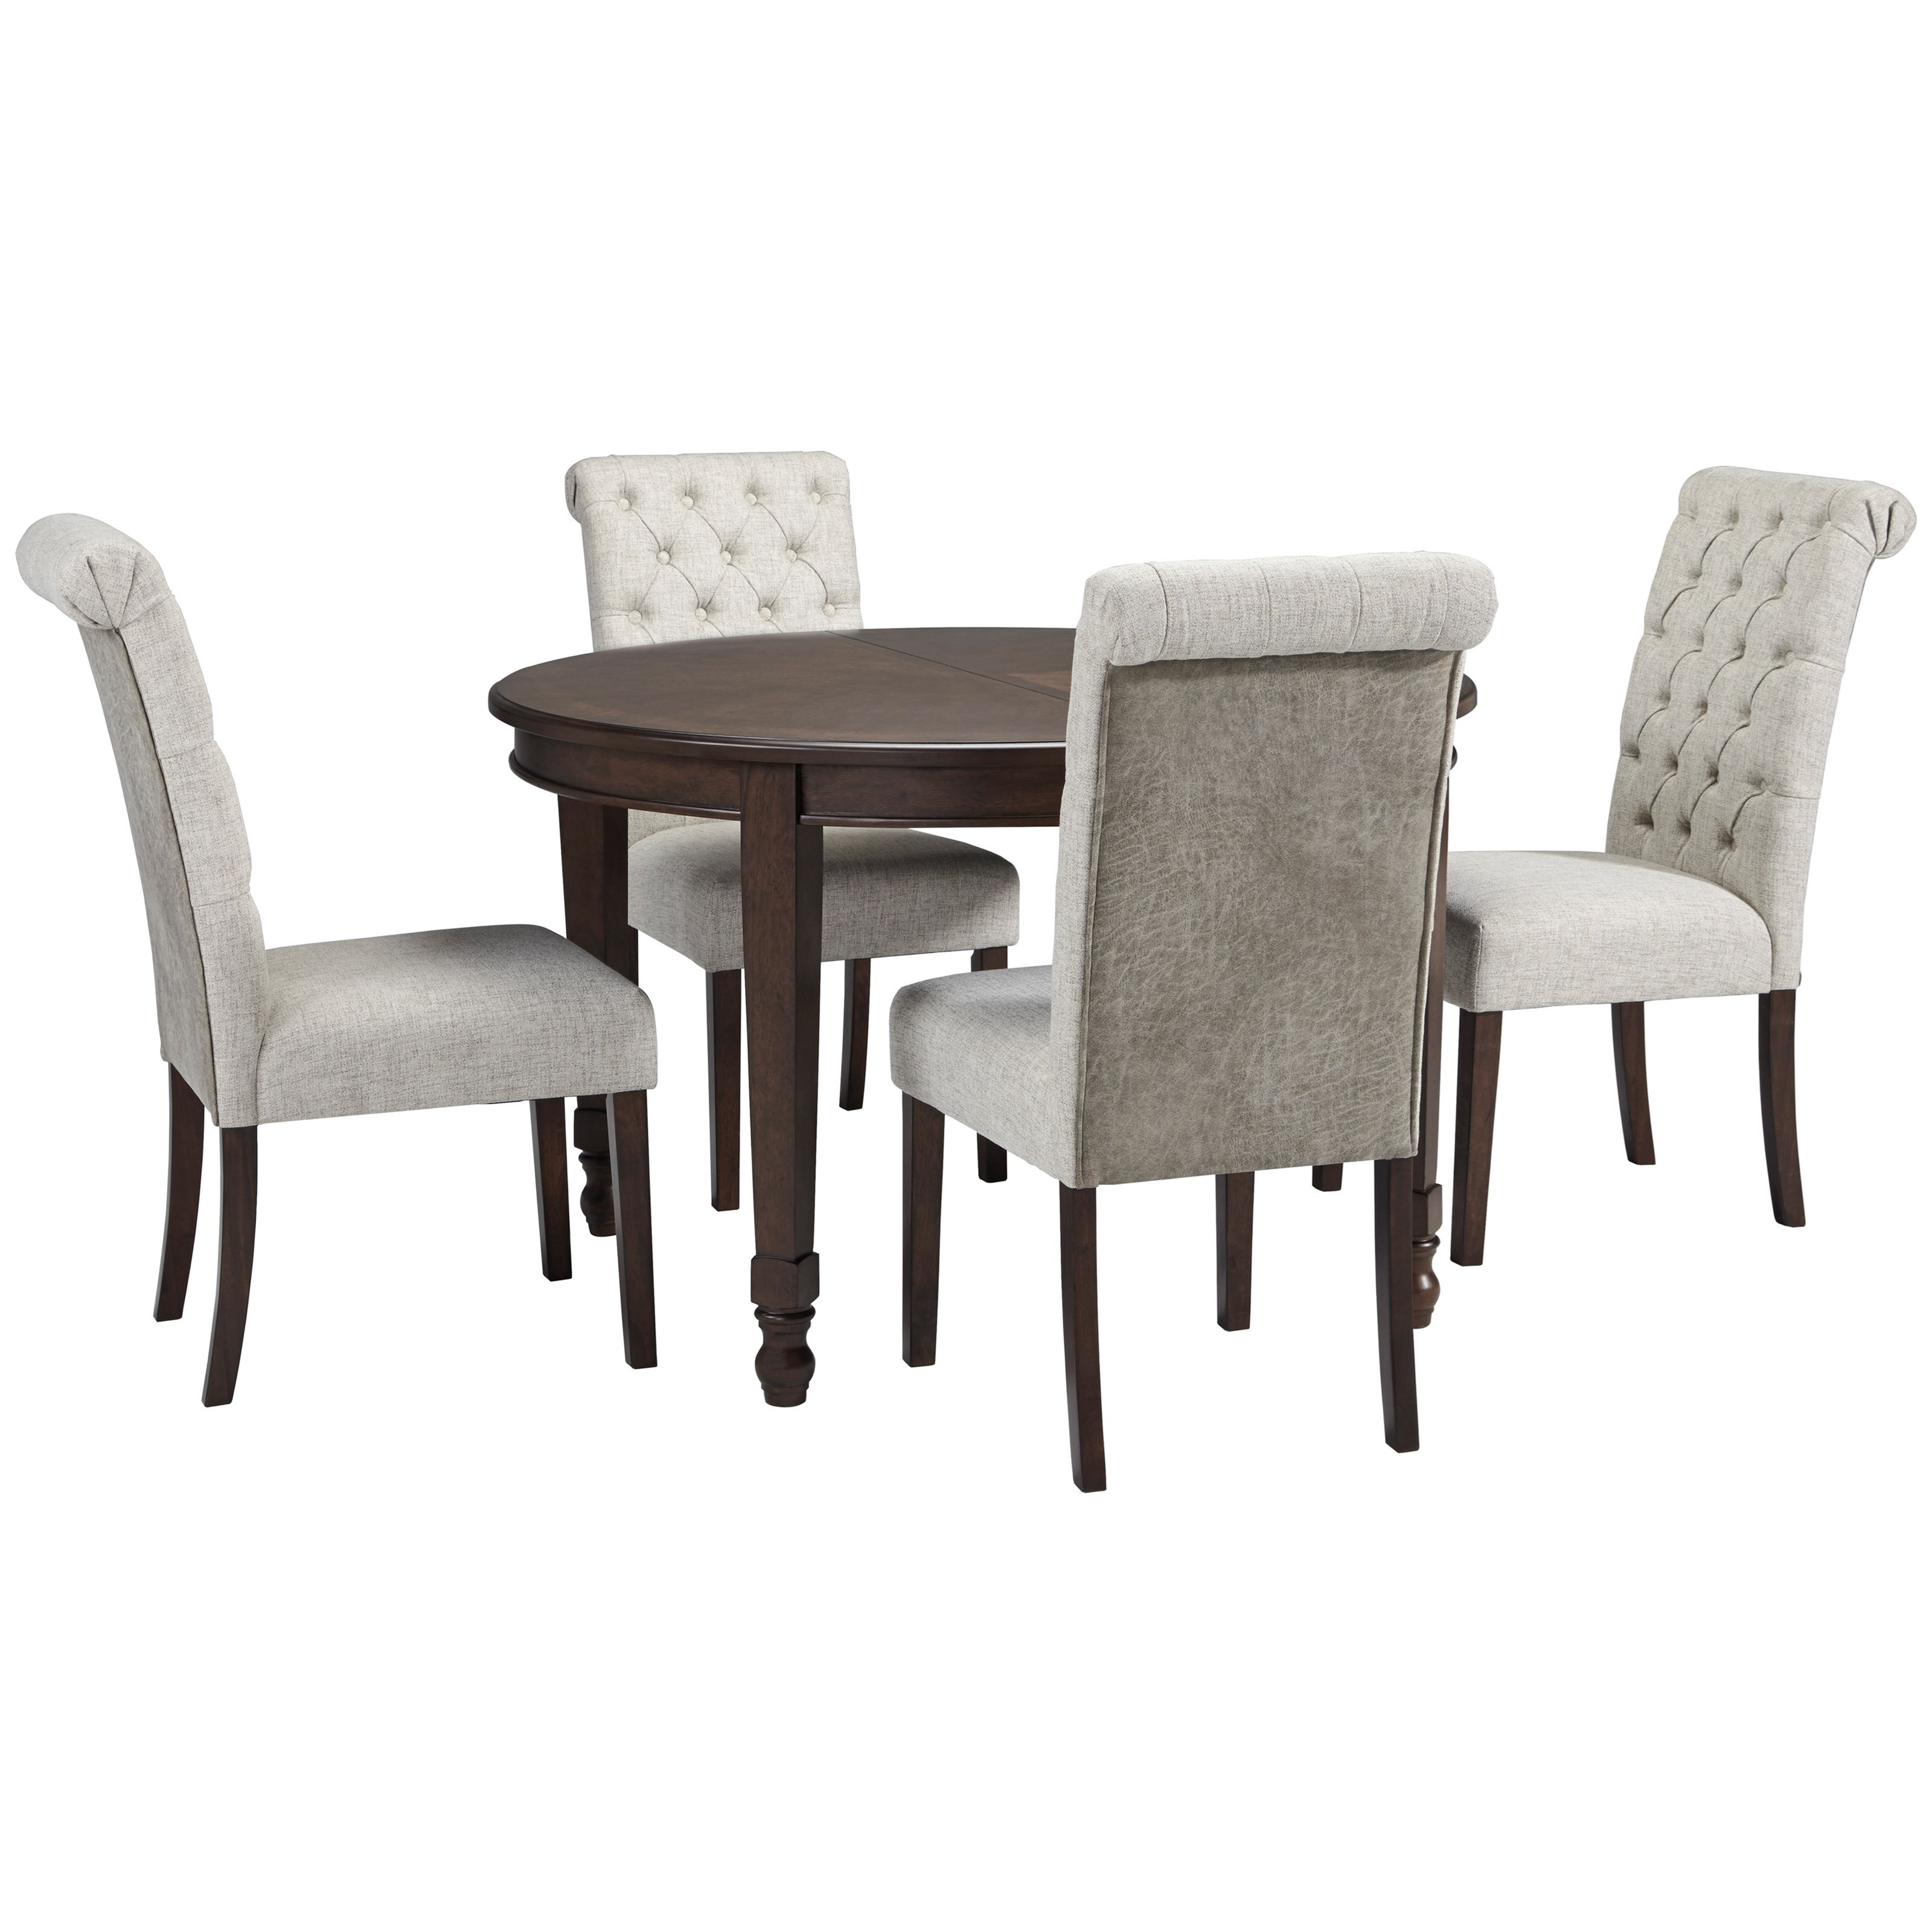 Adinton 5-Piece Table and Chair Set by Signature Design by Ashley at Beds N Stuff